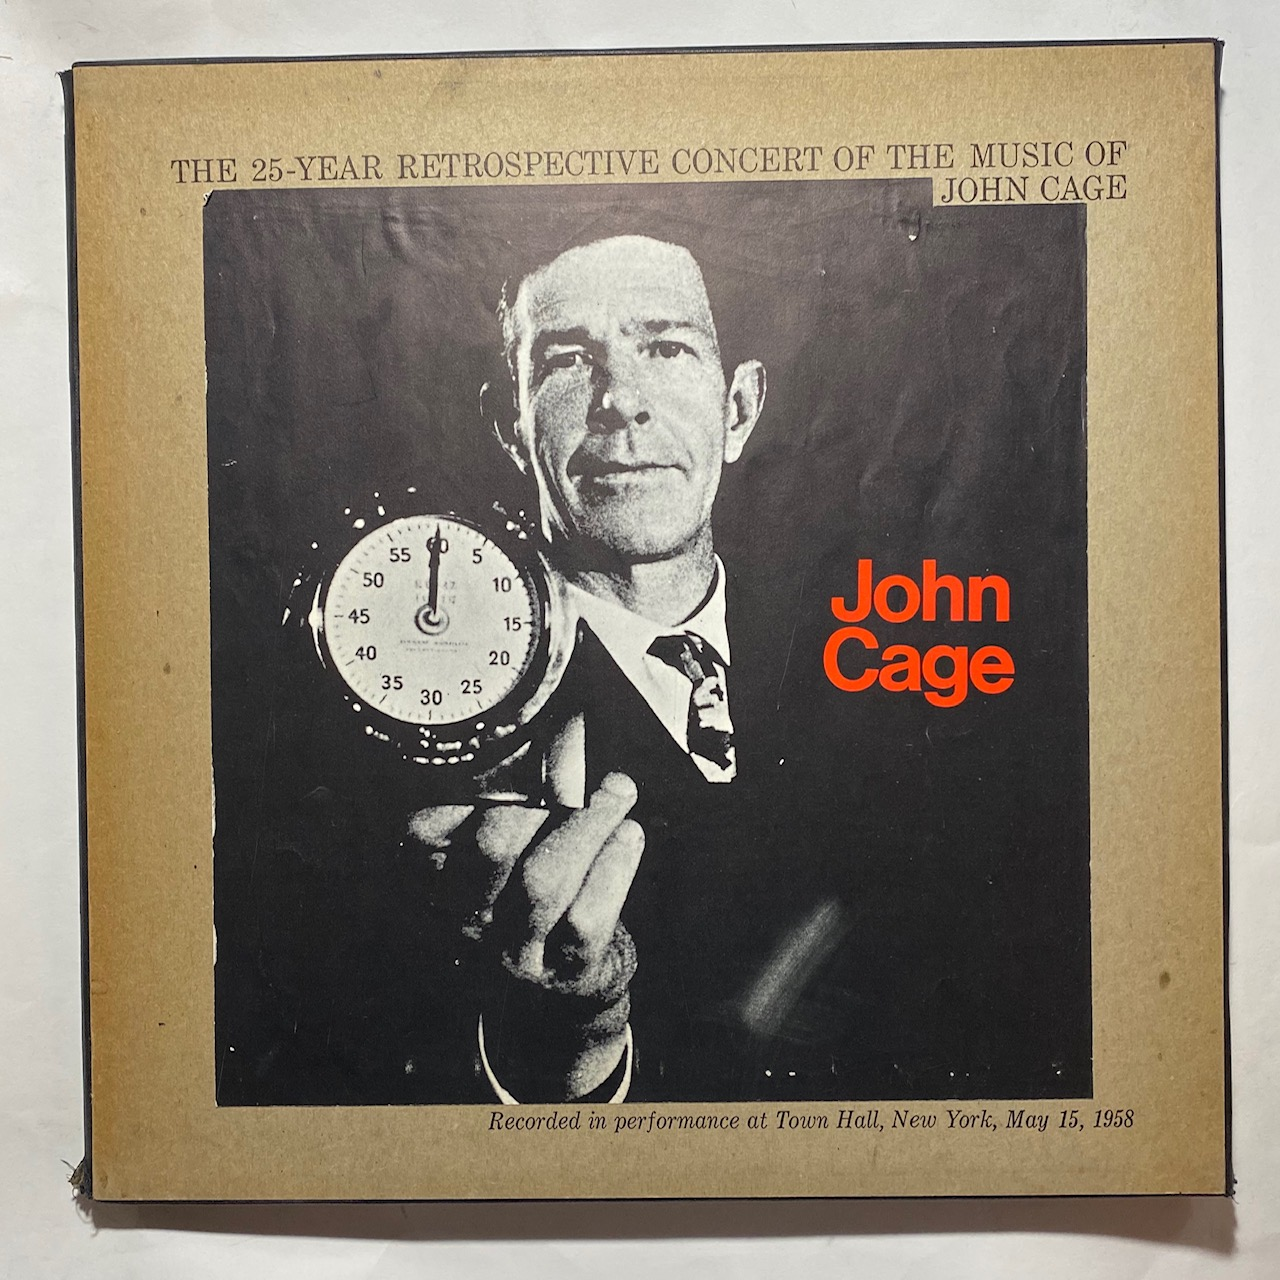 JOHN CAGE - The 25-Year Retrospective Concert Of The Music Of John Cage - LP Box Set